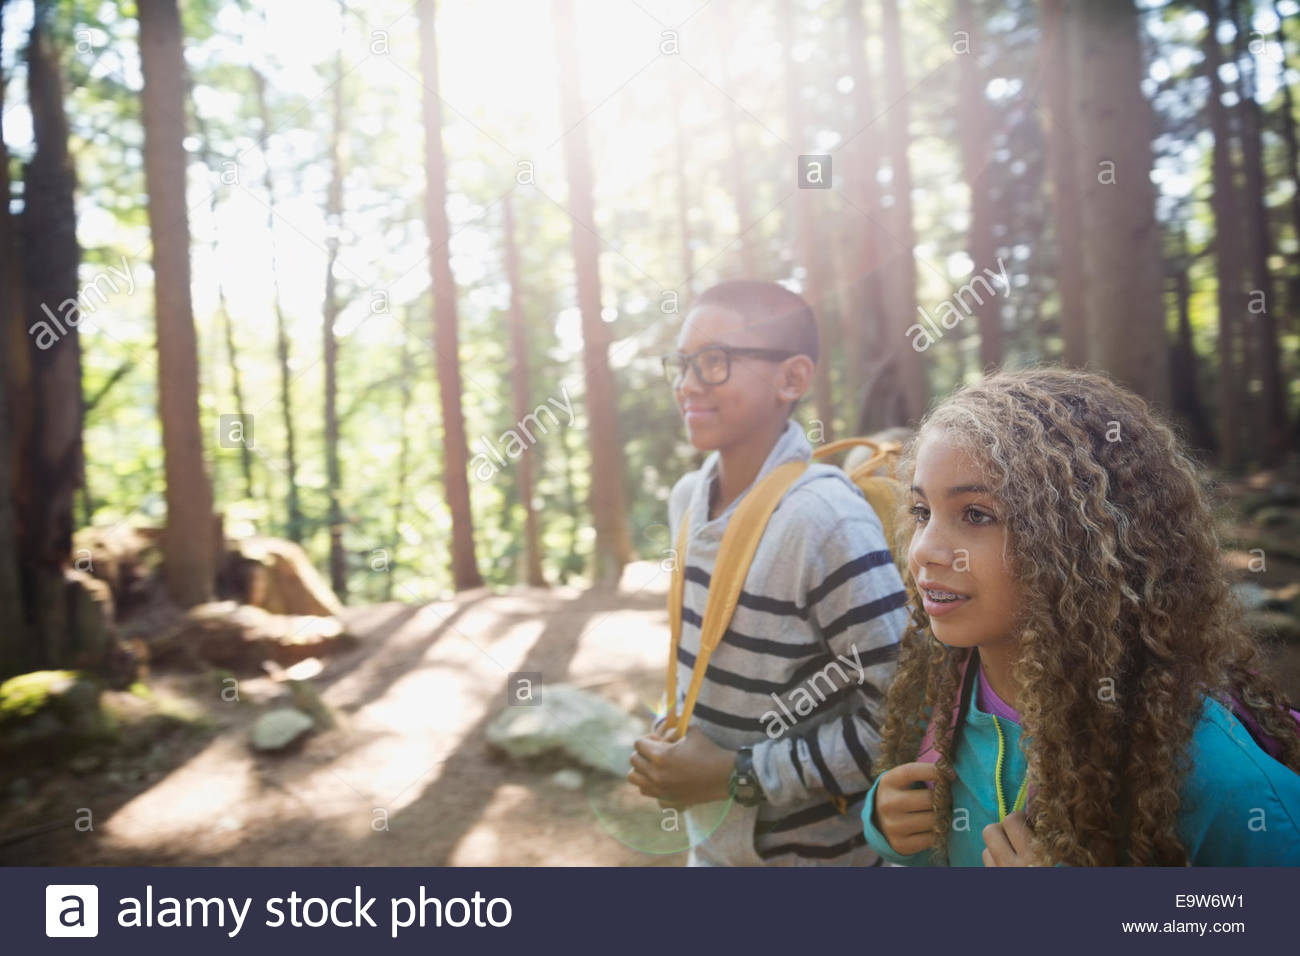 Boy and girl hiking dans sunny woods Photo Stock